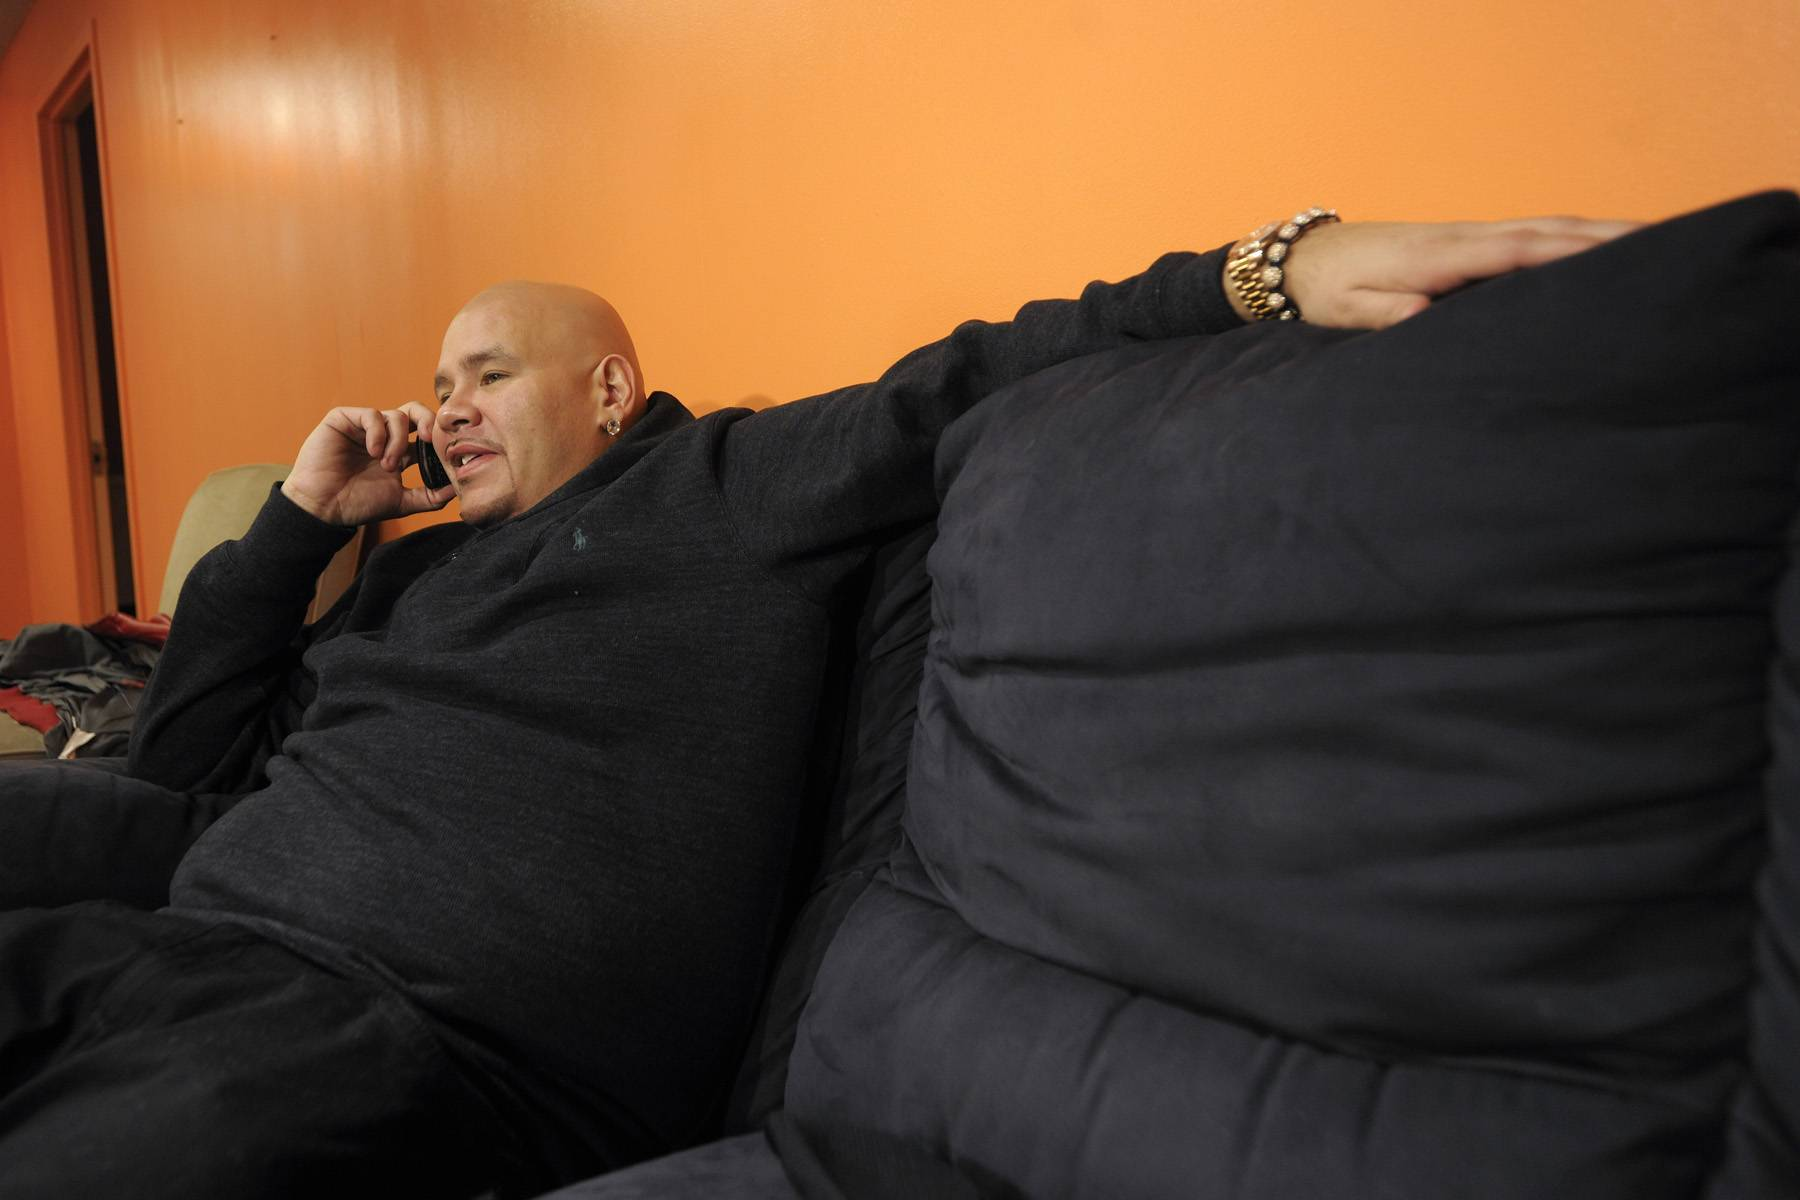 Hold on Please - Fat Joe in the green room at 106 & Park, January 3, 2012. (Photo: John Ricard / BET)